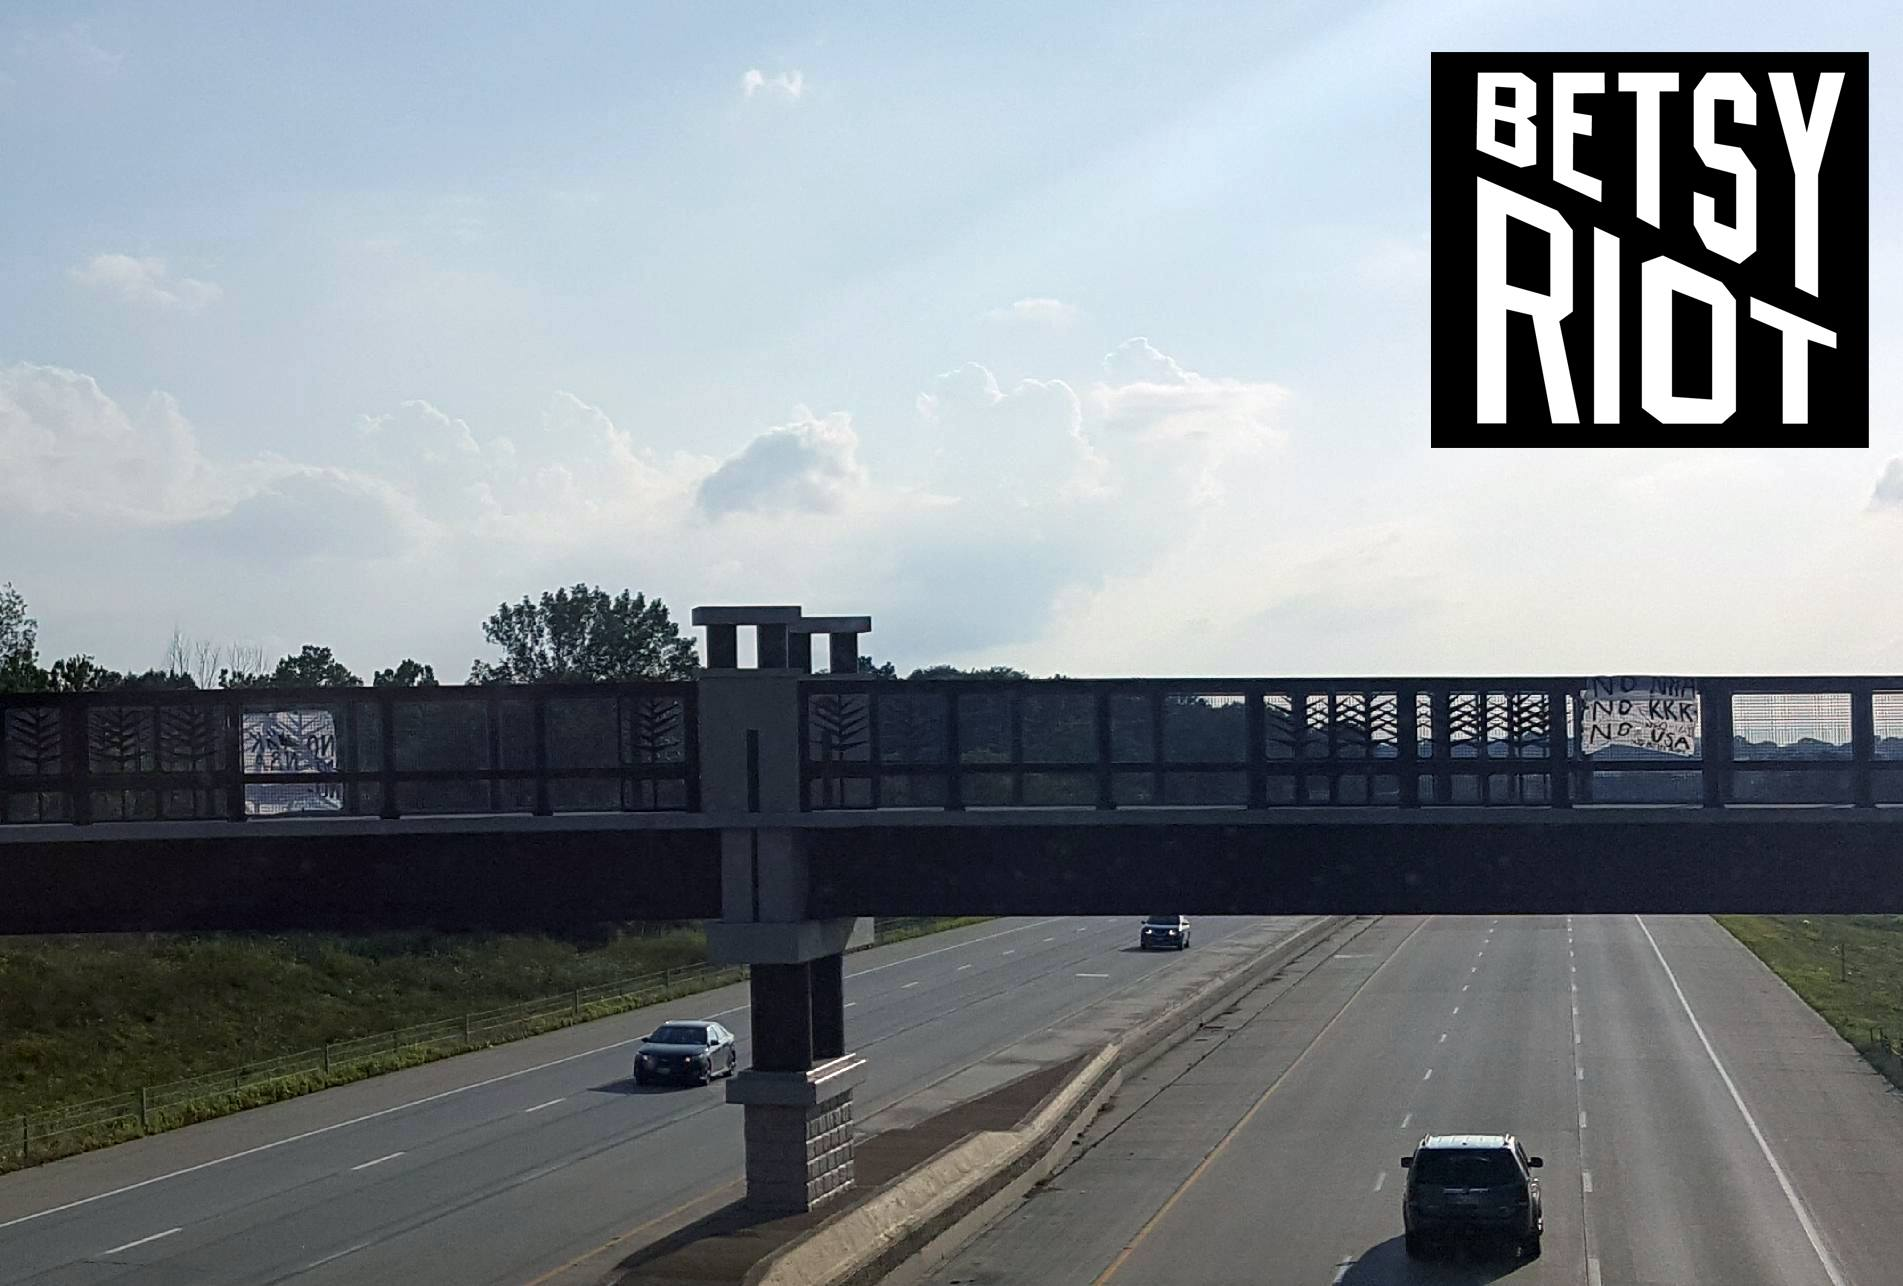 I-80 in Rural Iowa – the BETSY RIOT